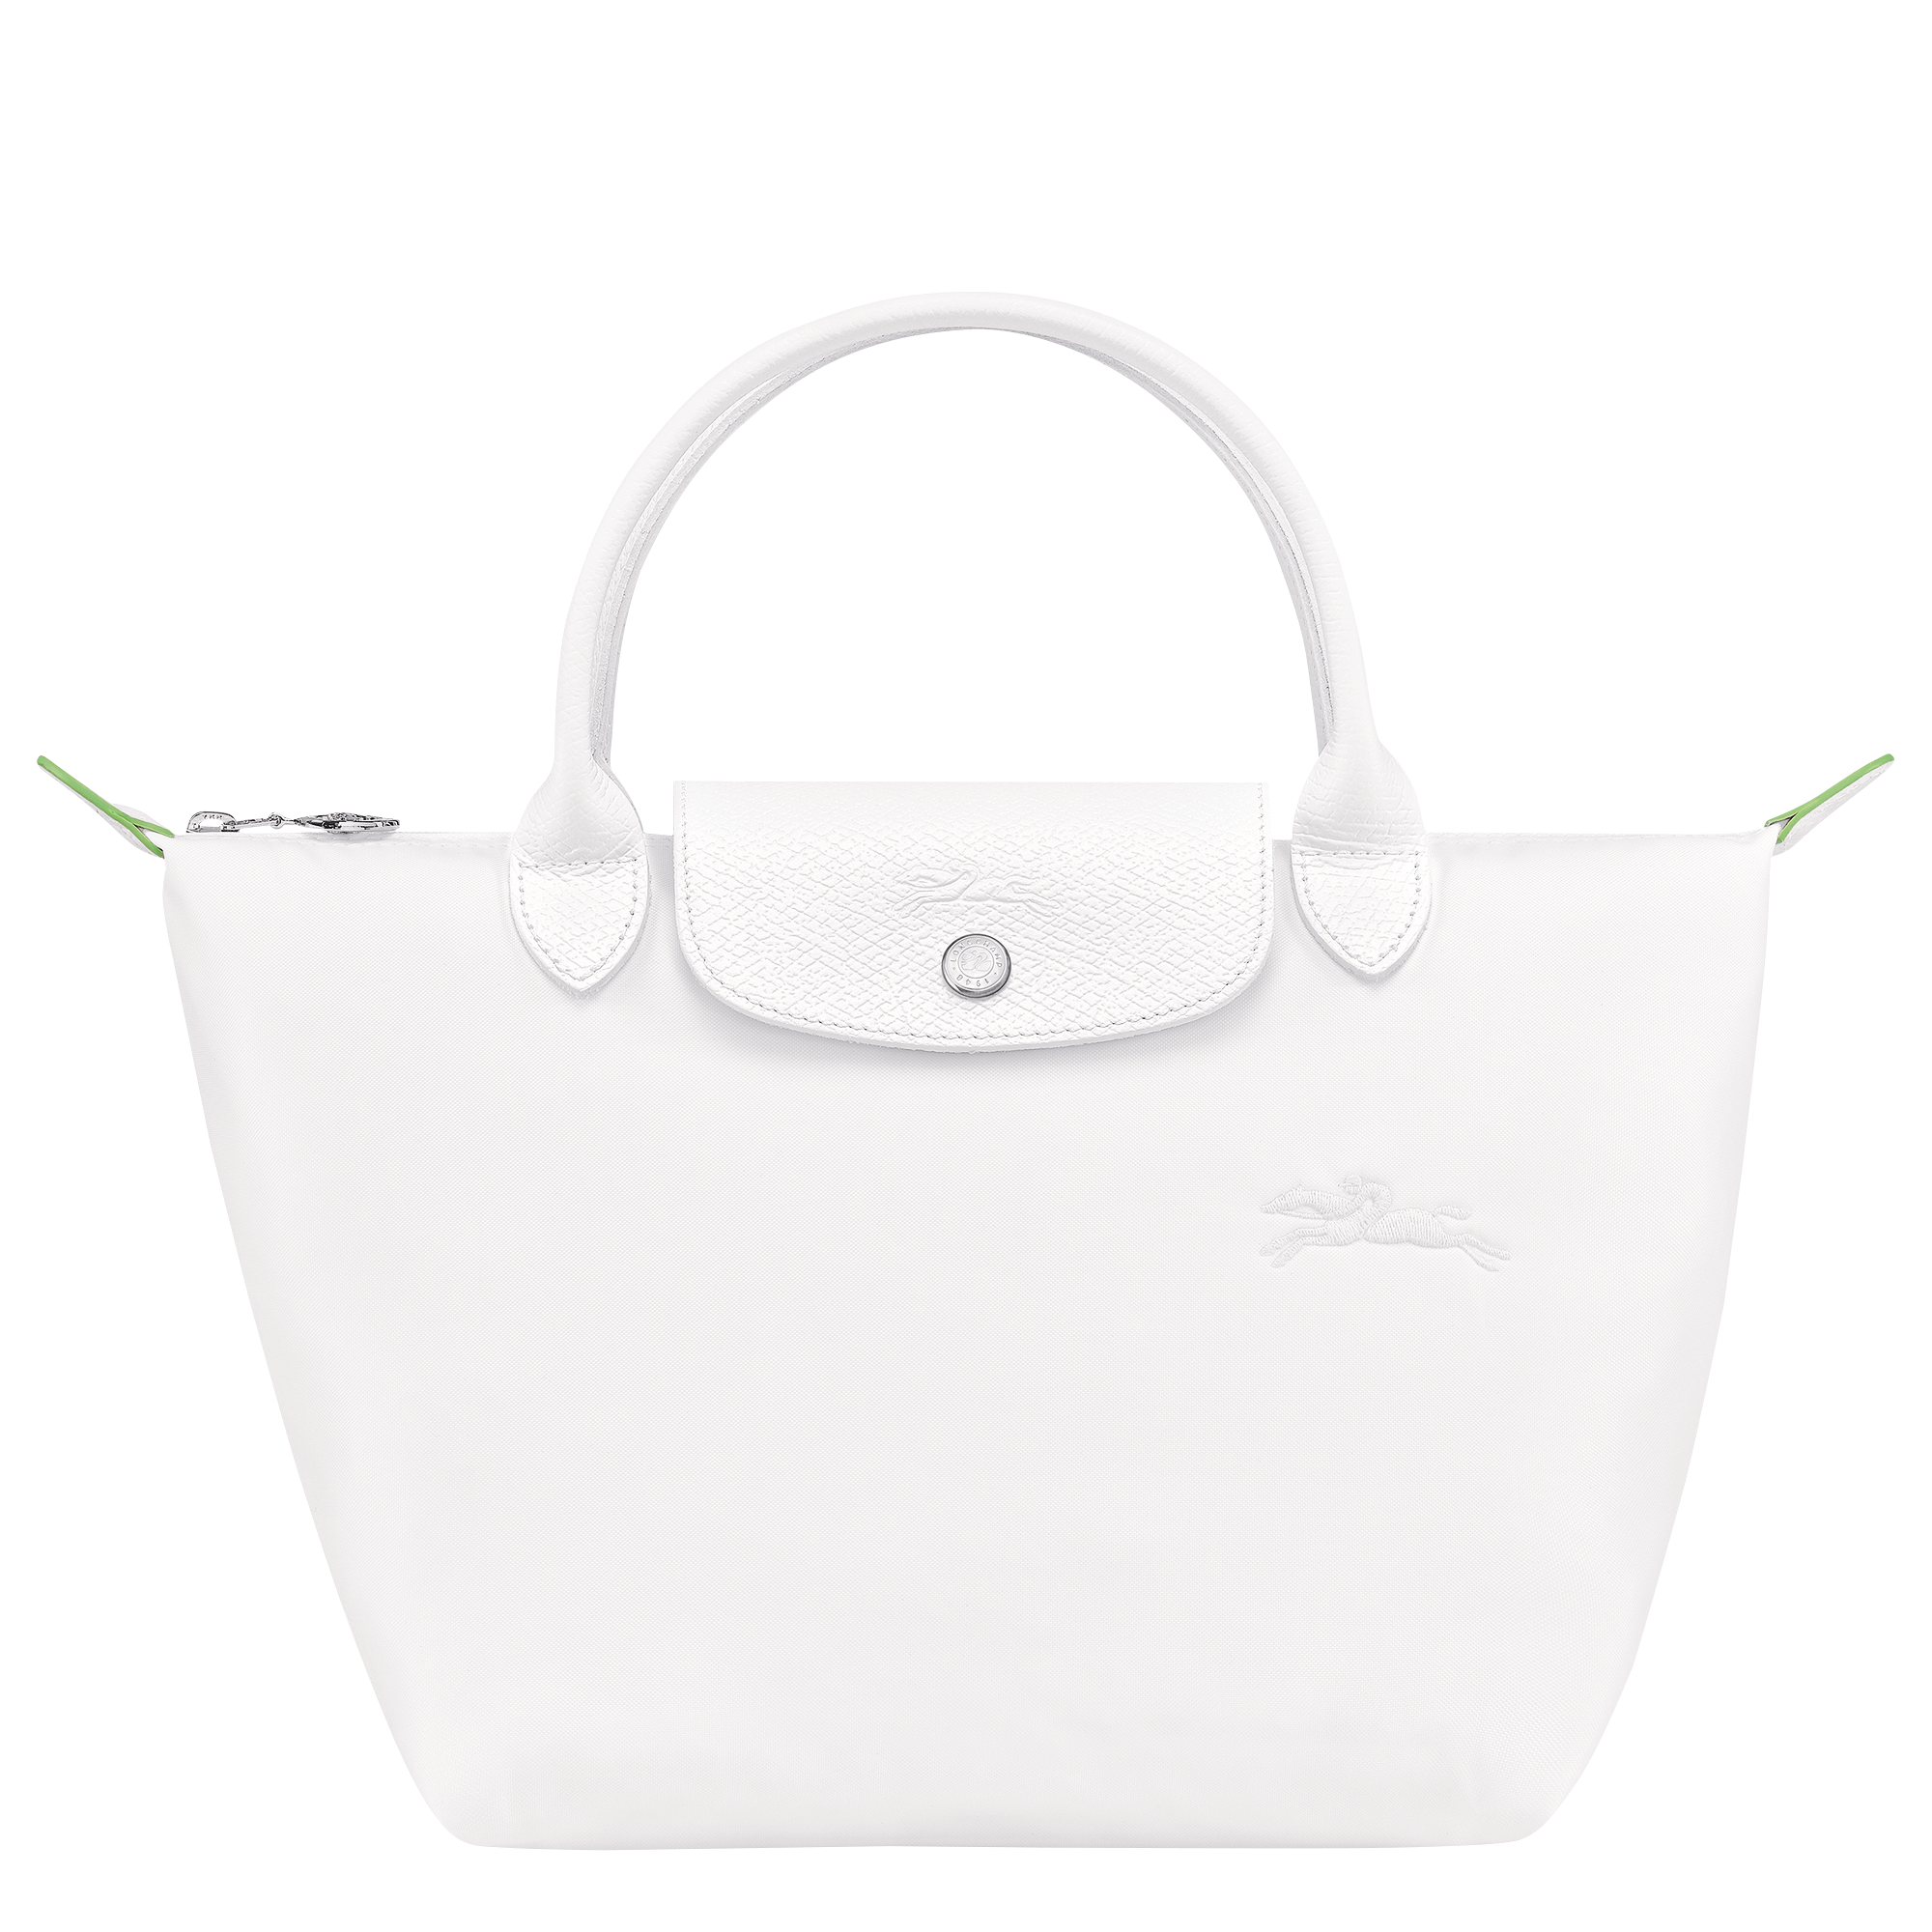 'LE PLIAGE®' GREEN TOP HANDLE BAG S IN SNOW, RM535